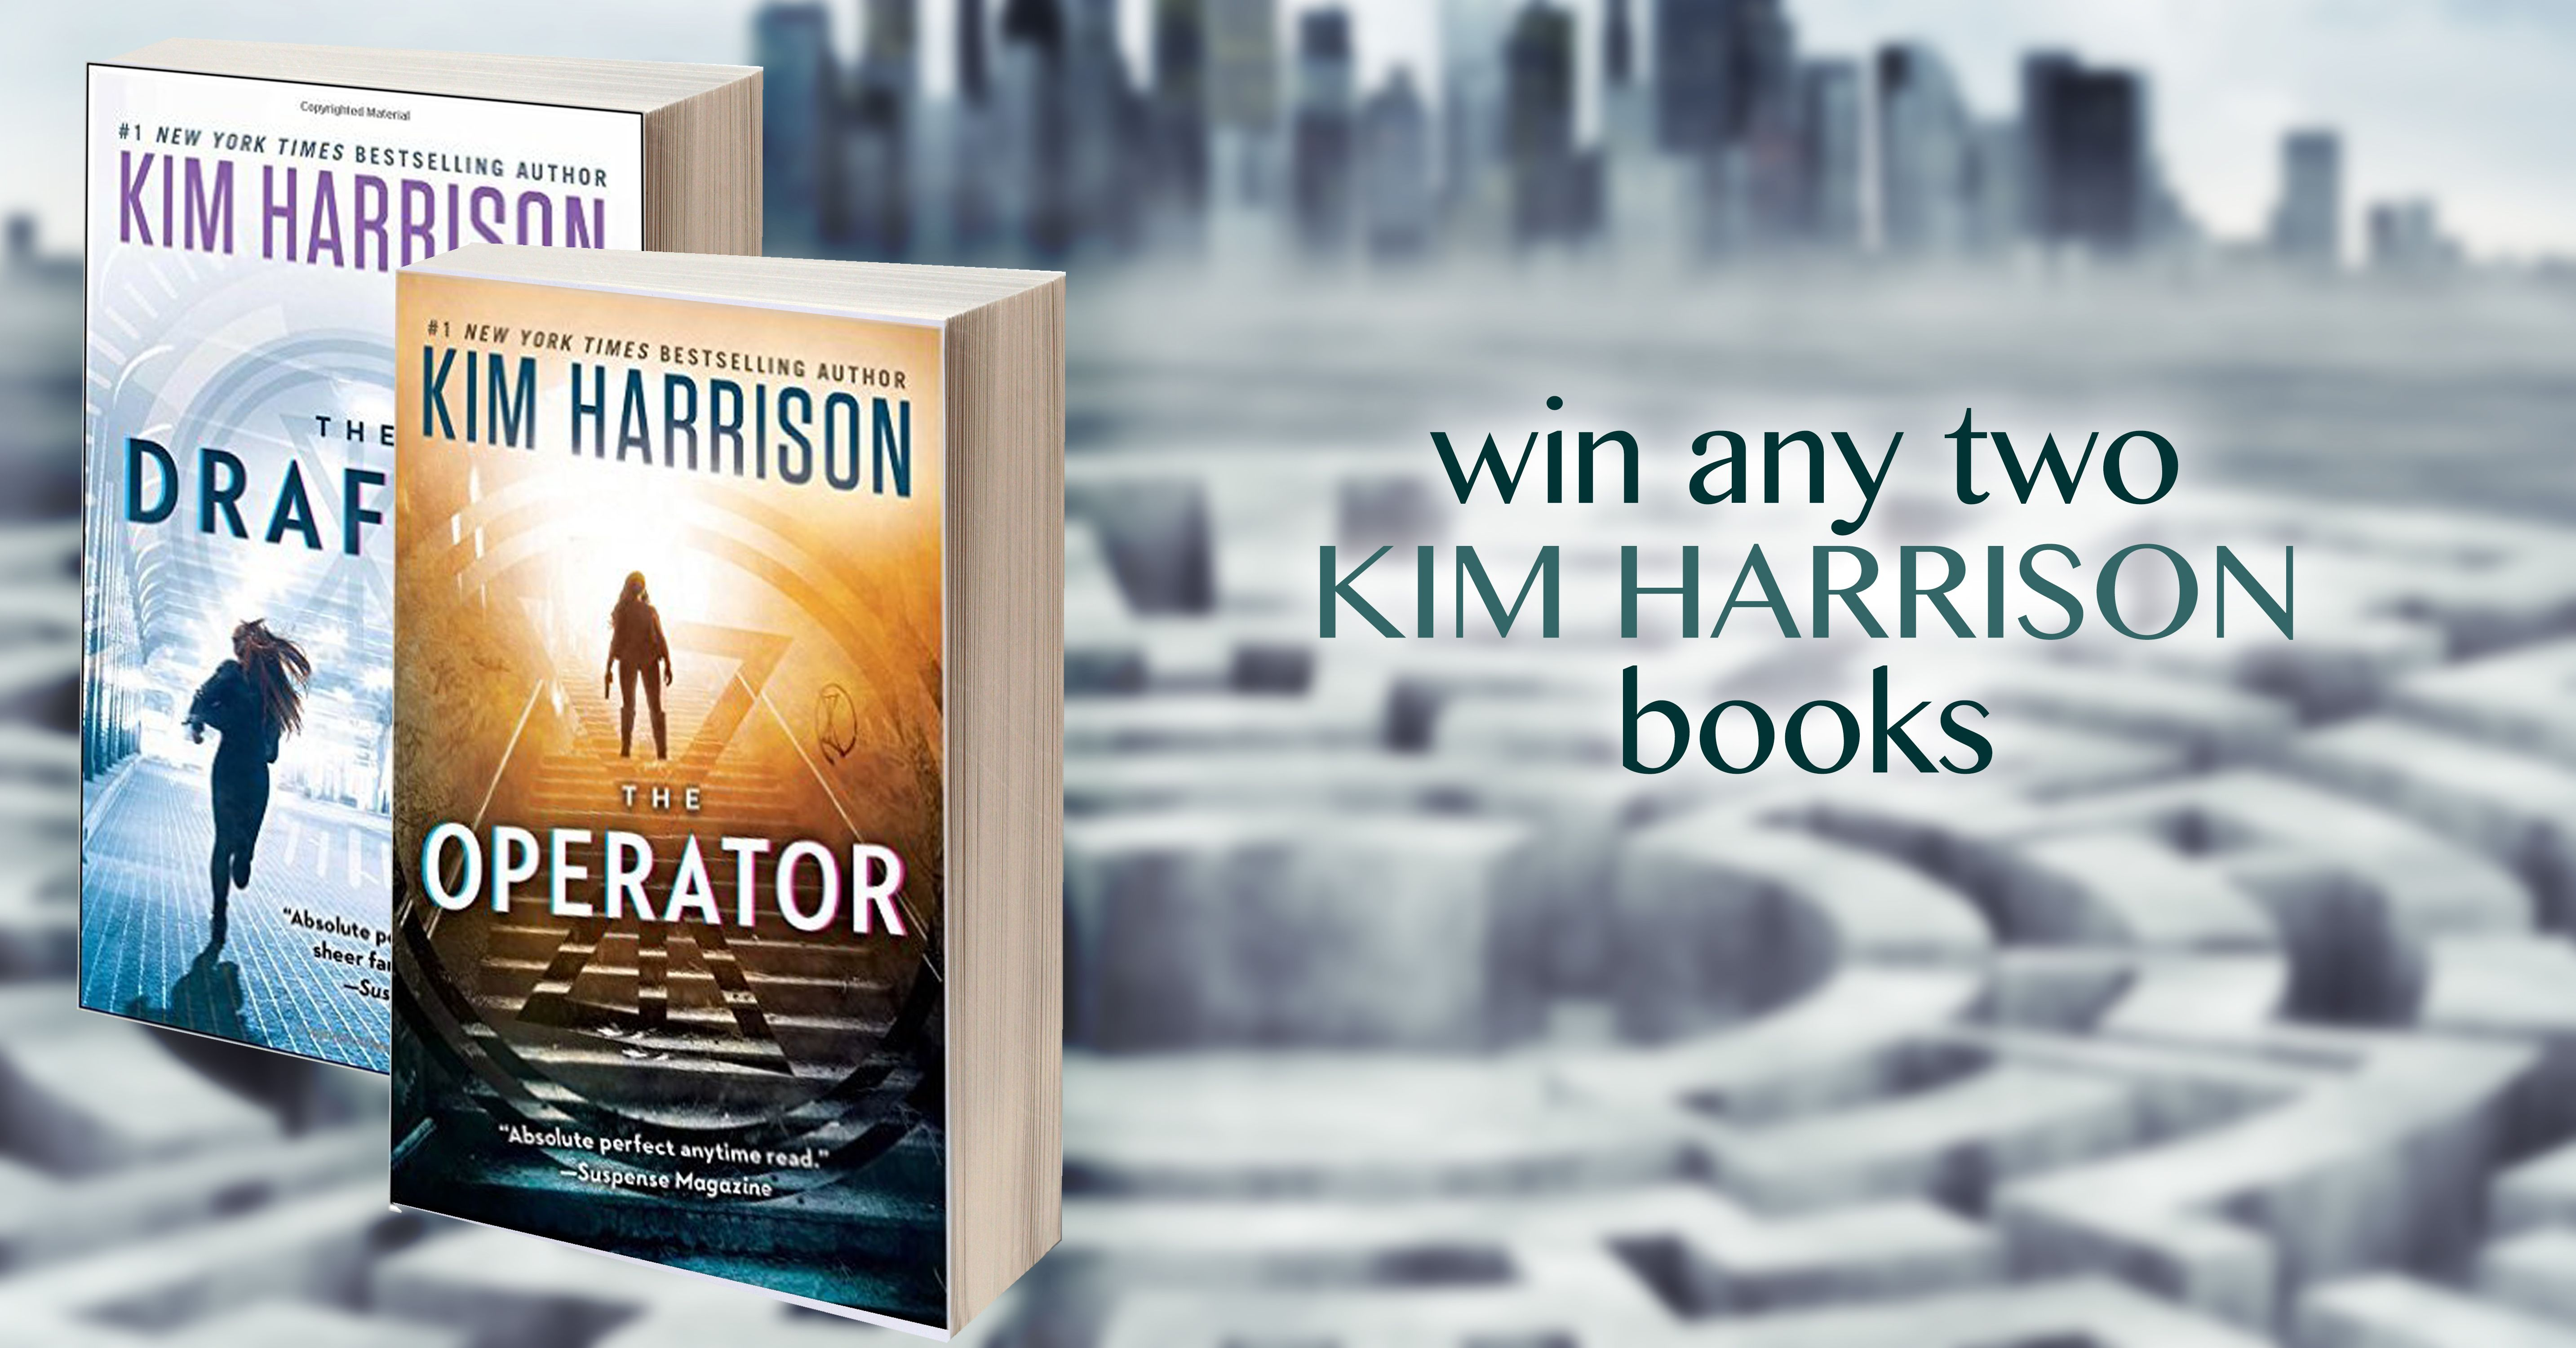 Author book giveaways